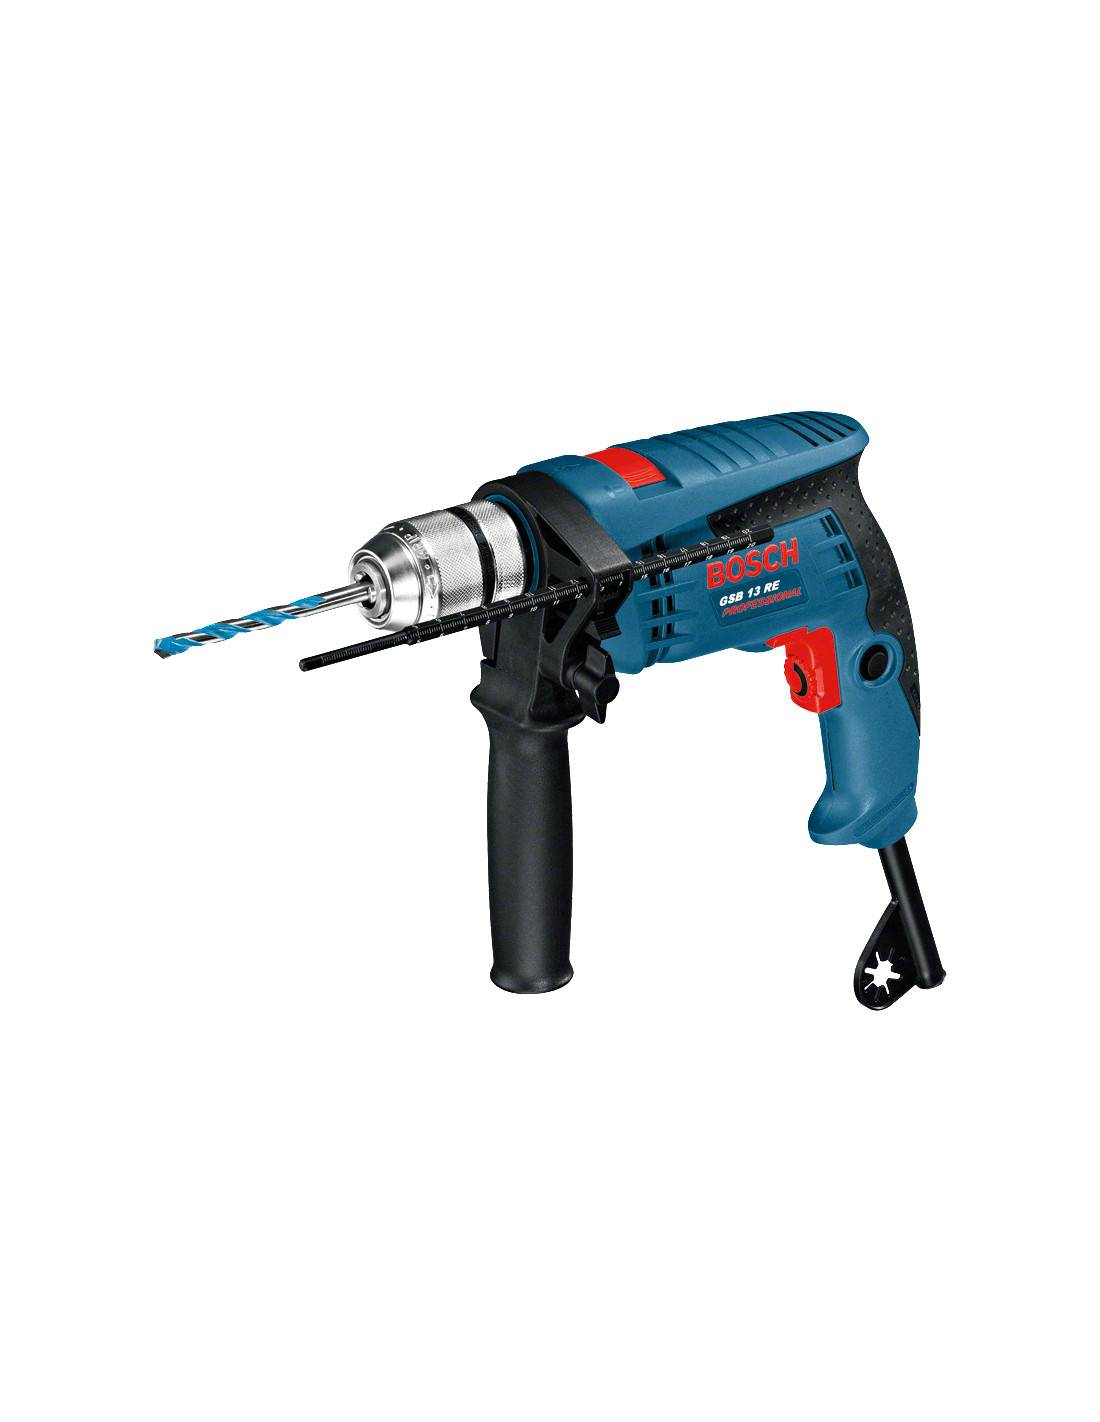 Perceuse à percussion 600W GSB 13 RE en coffret standard - BOSCH - 0601217103